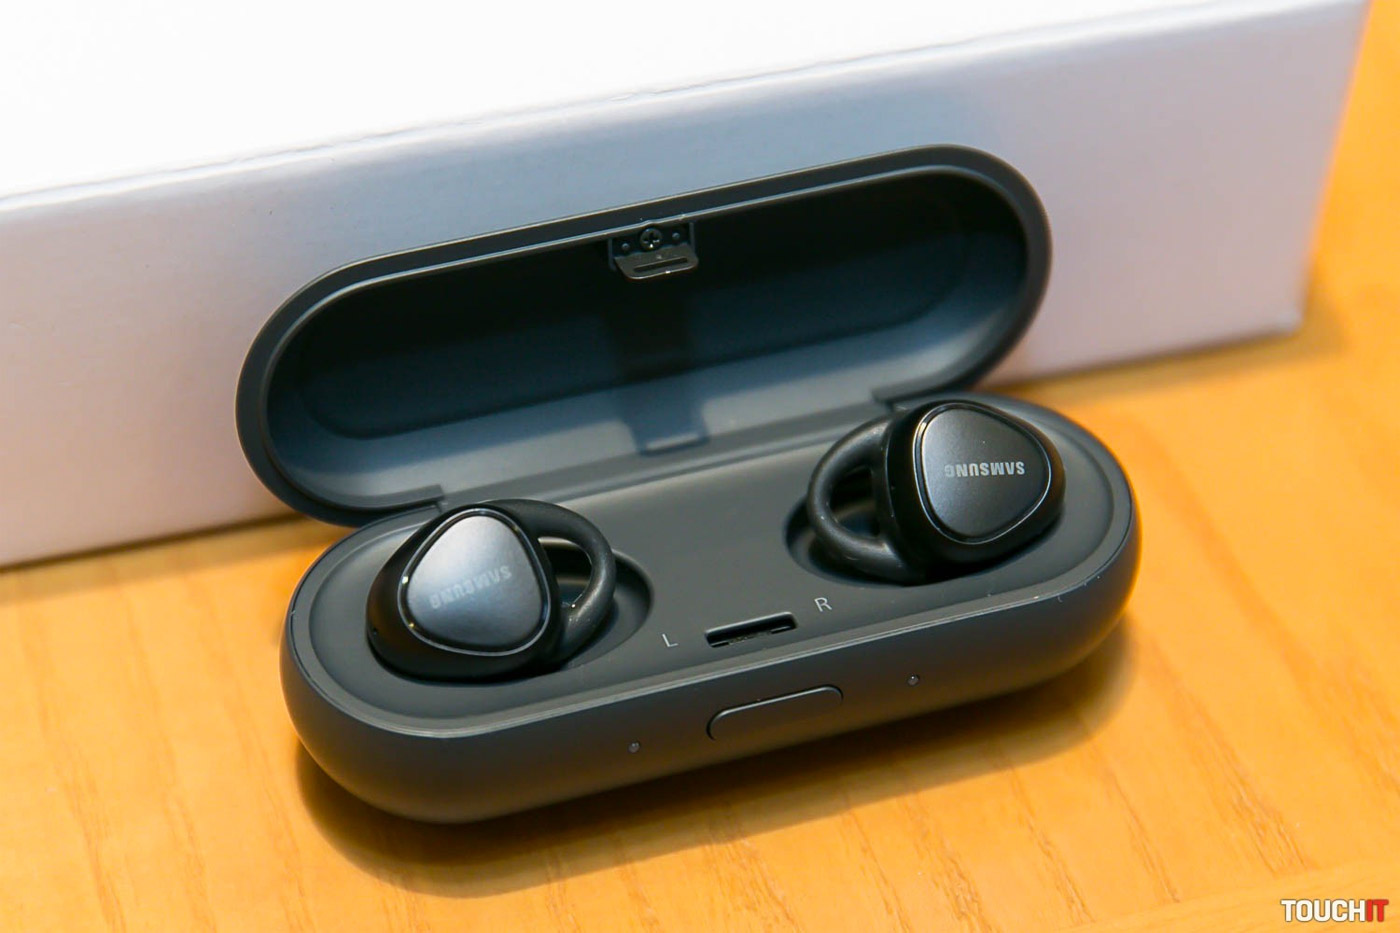 b167b0c51b3 IconX earbuds in case. Samsung's IconX earbuds come with a charging case